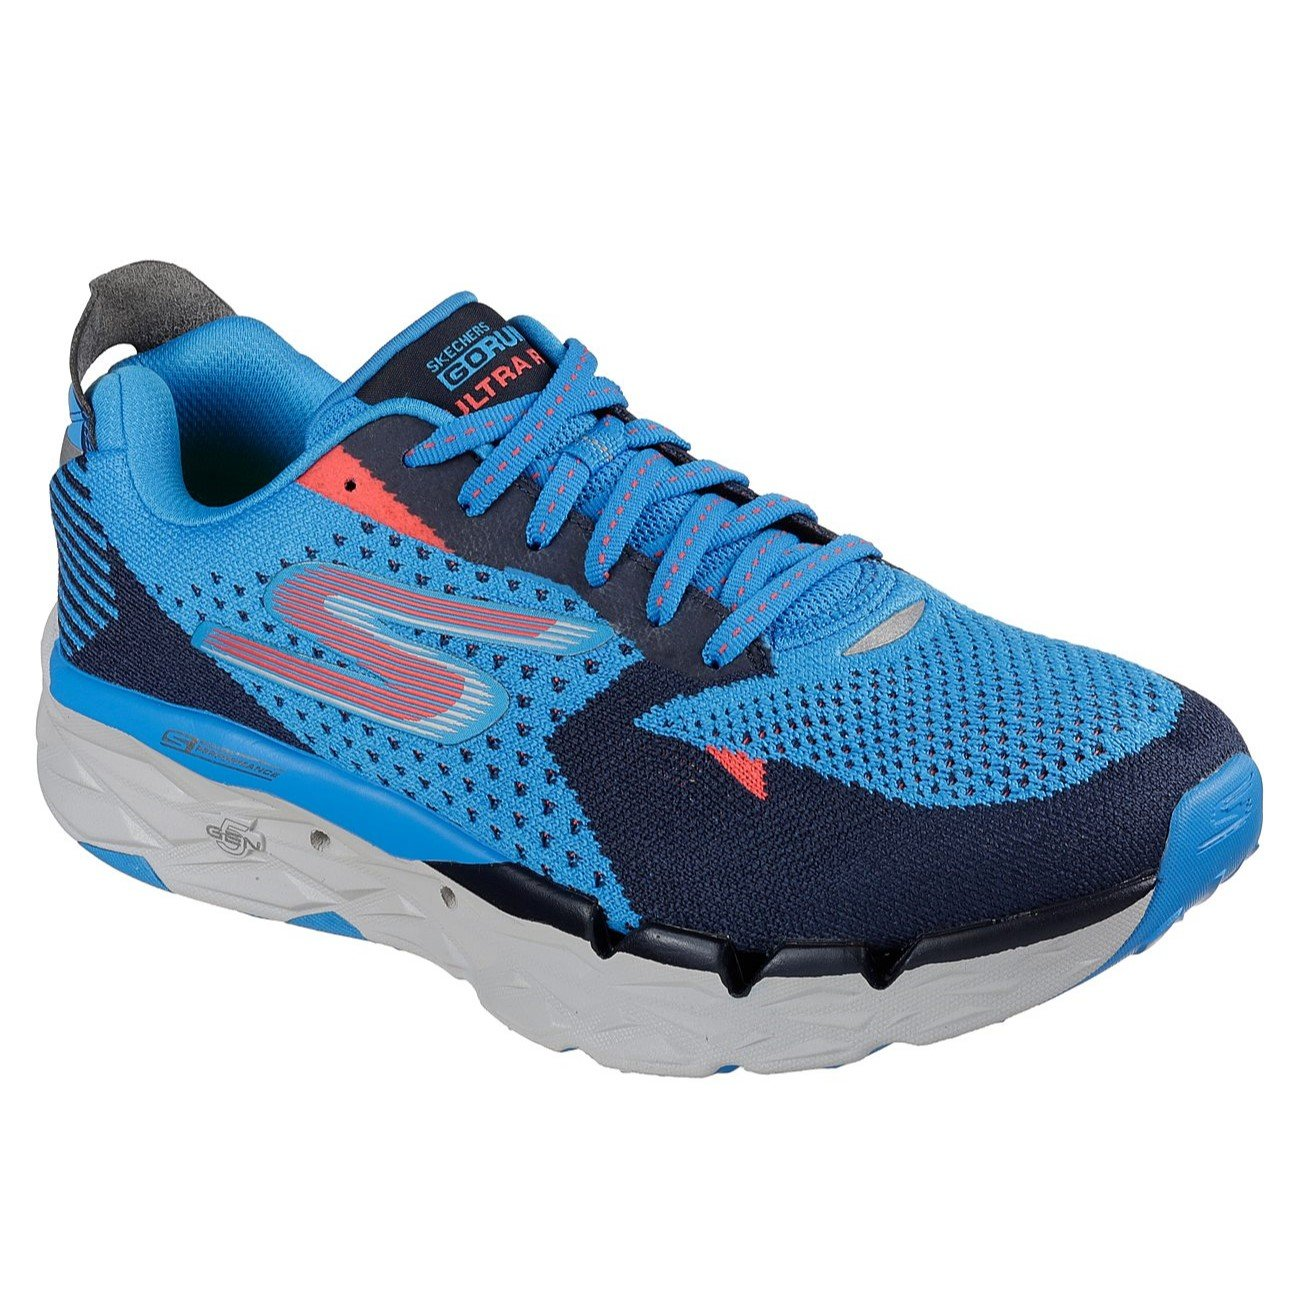 SkechersメンズGo Run Ultra R B07D4LSY31 12.5 D(M) US ブルー